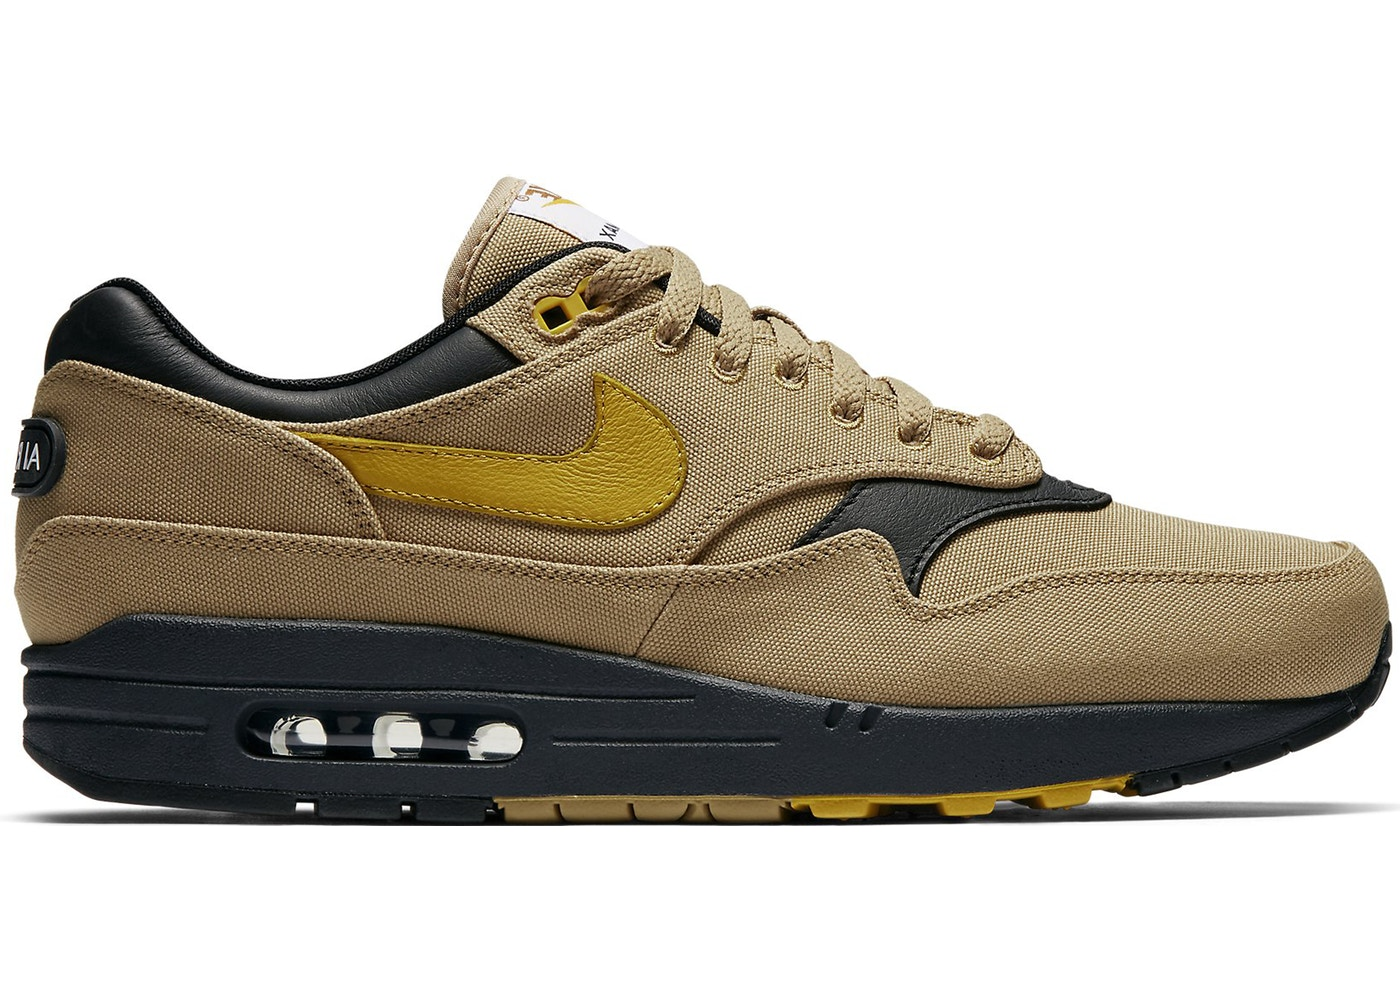 97ca555e6c8 Buy Nike Air Max 1 Shoes   Deadstock Sneakers